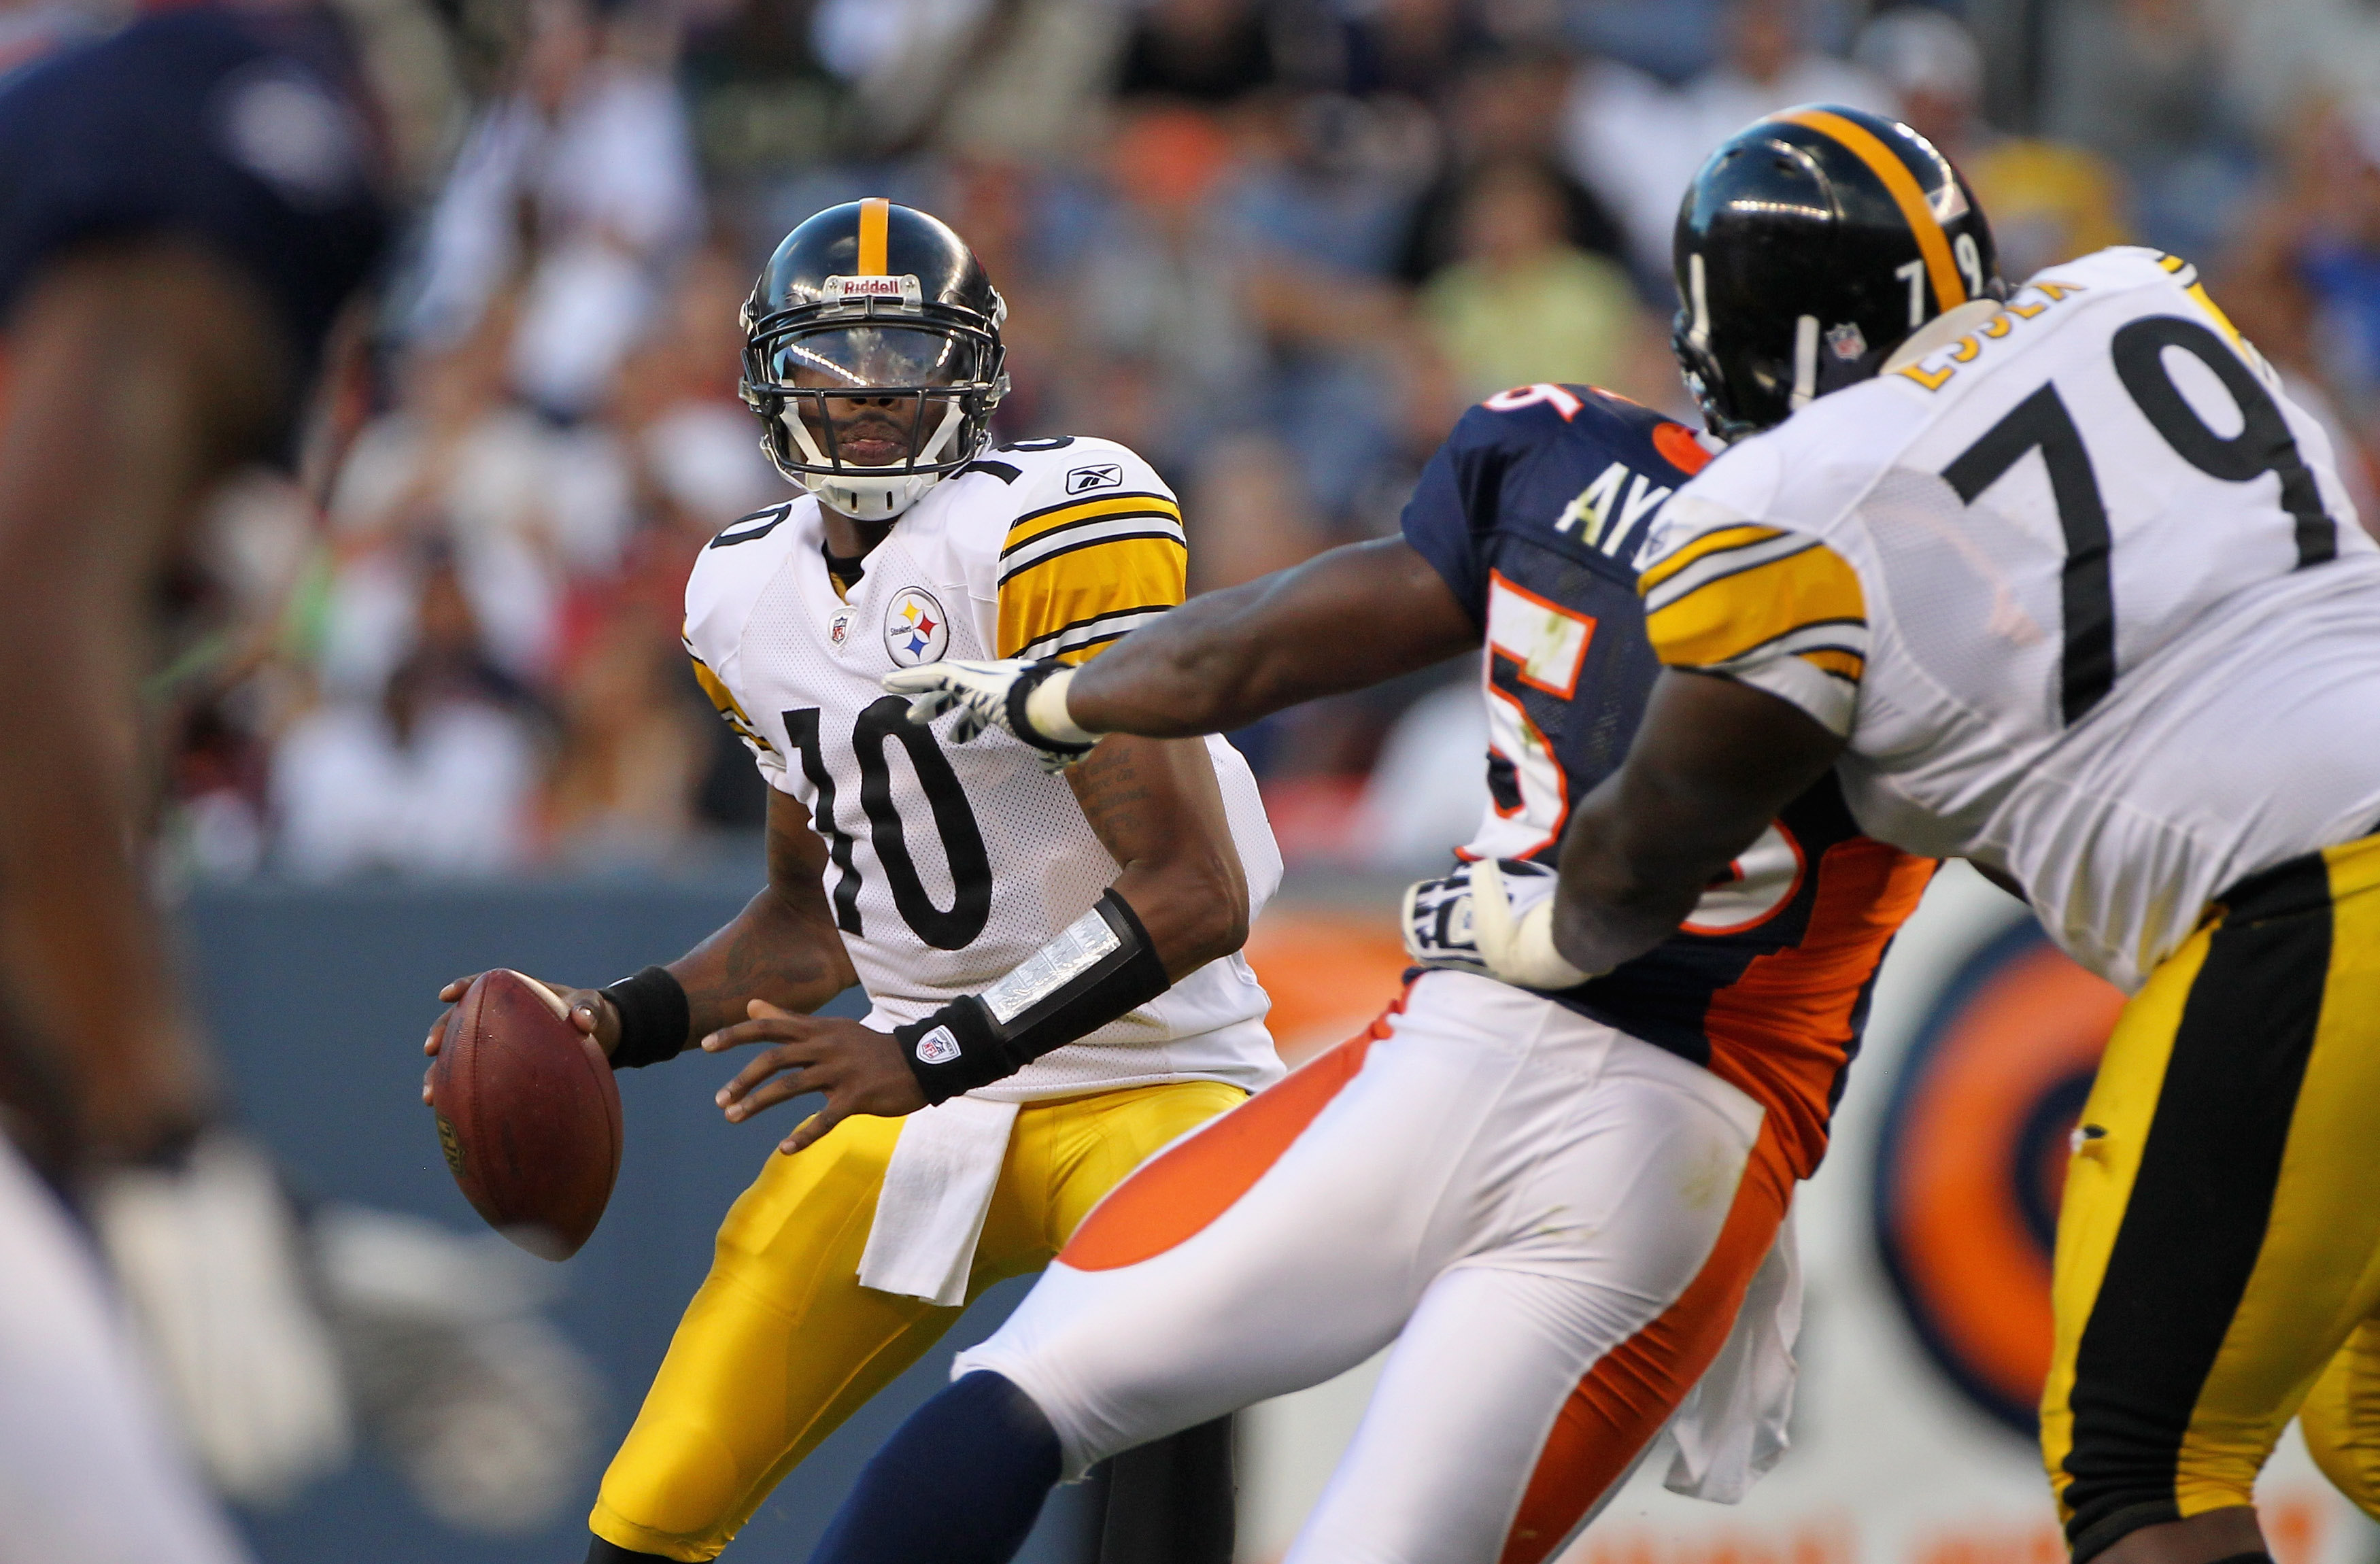 DENVER - AUGUST 29:  Quarterback Dennis Dixon #10 of the Pittsburgh Steelers looks for a recevier against the Denver Broncos during preseason NFL action at INVESCO Field at Mile High on August 29, 2010 in Denver, Colorado.  (Photo by Doug Pensinger/Getty